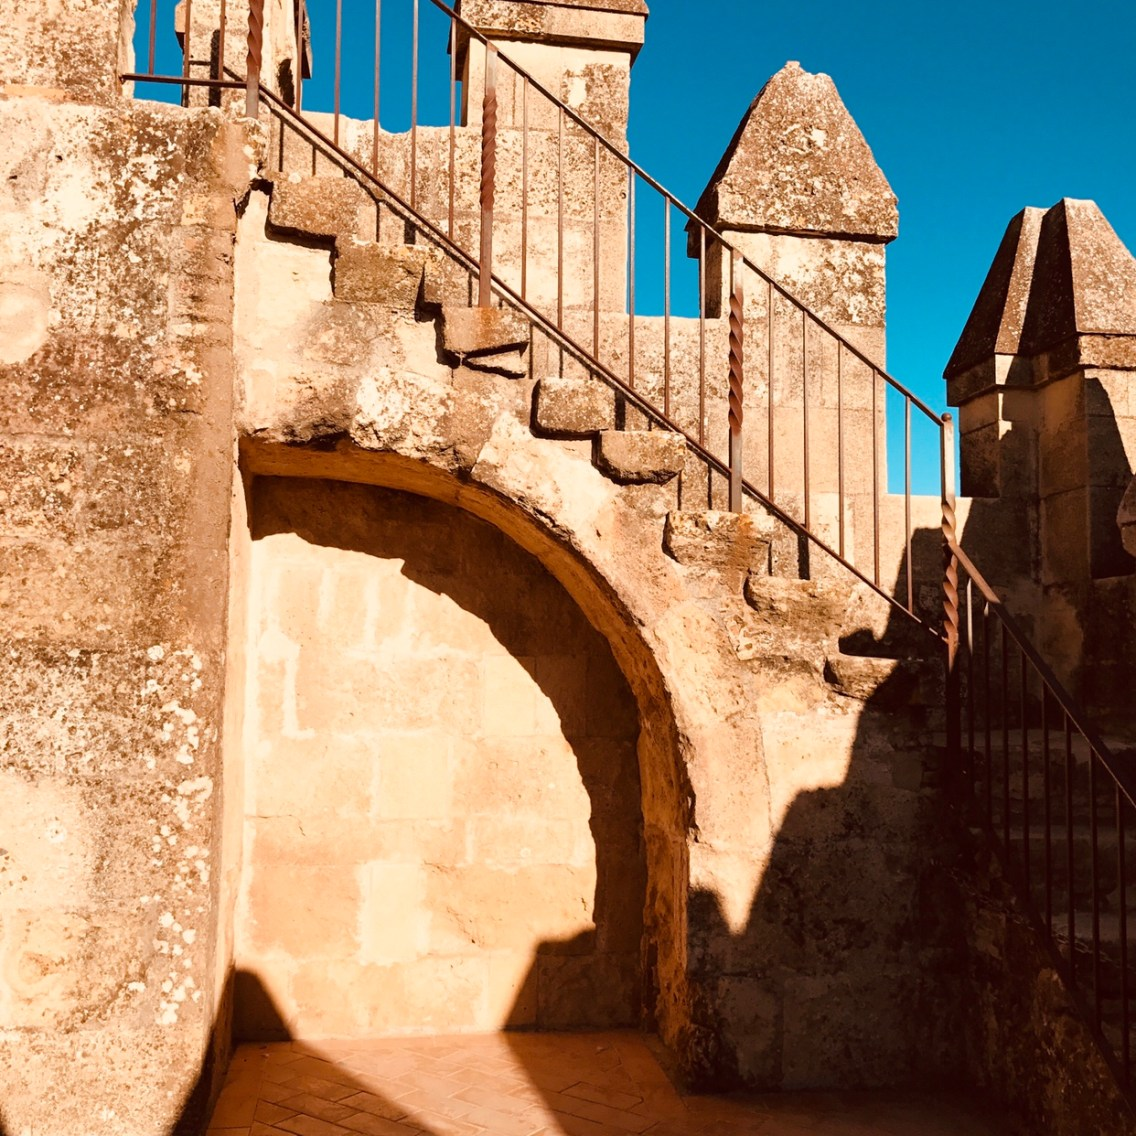 The way to the the towers of the Alcazar.